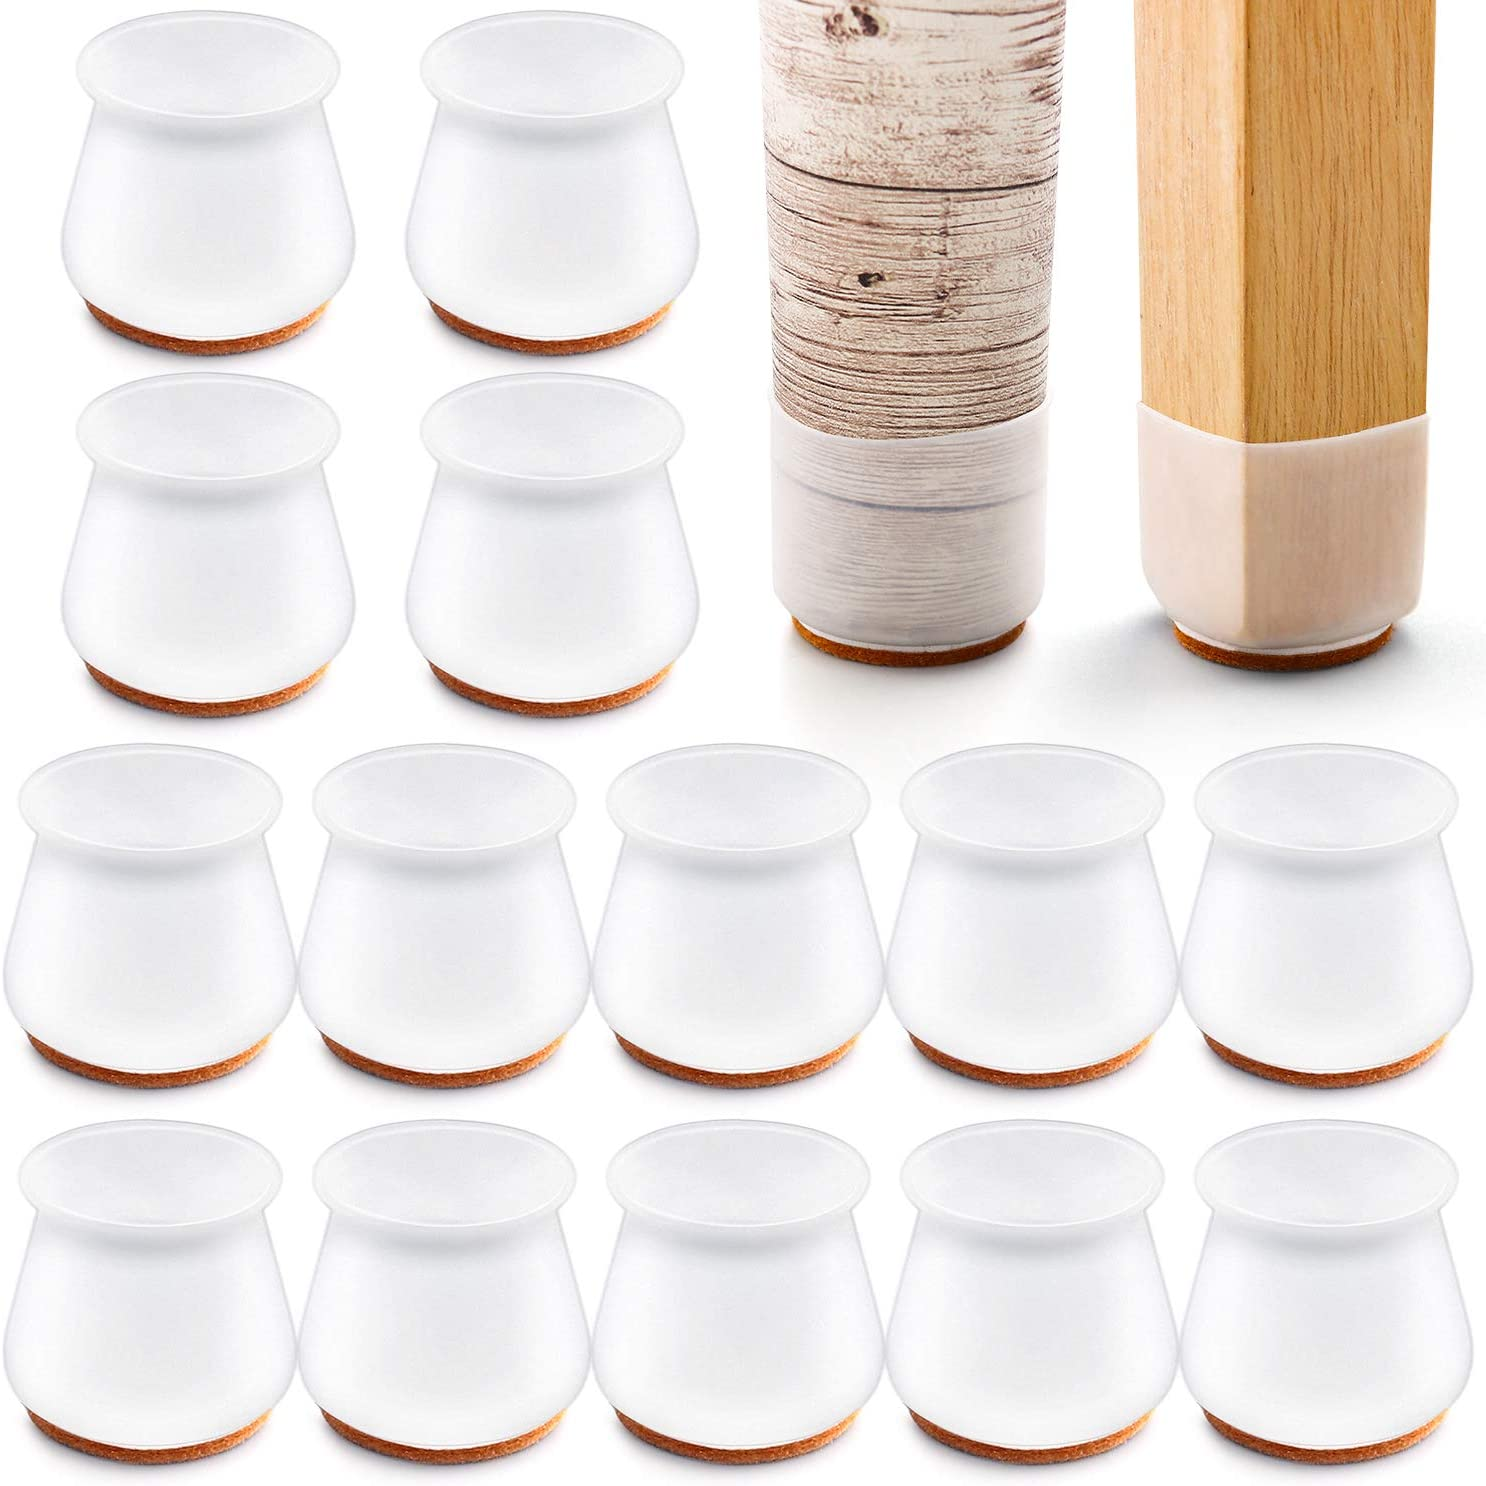 24 PCS Silicone Chair Leg Protectors with Felt for Hardwood Floors, mikede Silicone Furniture Leg Cover Pad for Protecting Floors from Scratches and Noise, Smooth Moving for Chair Feet.